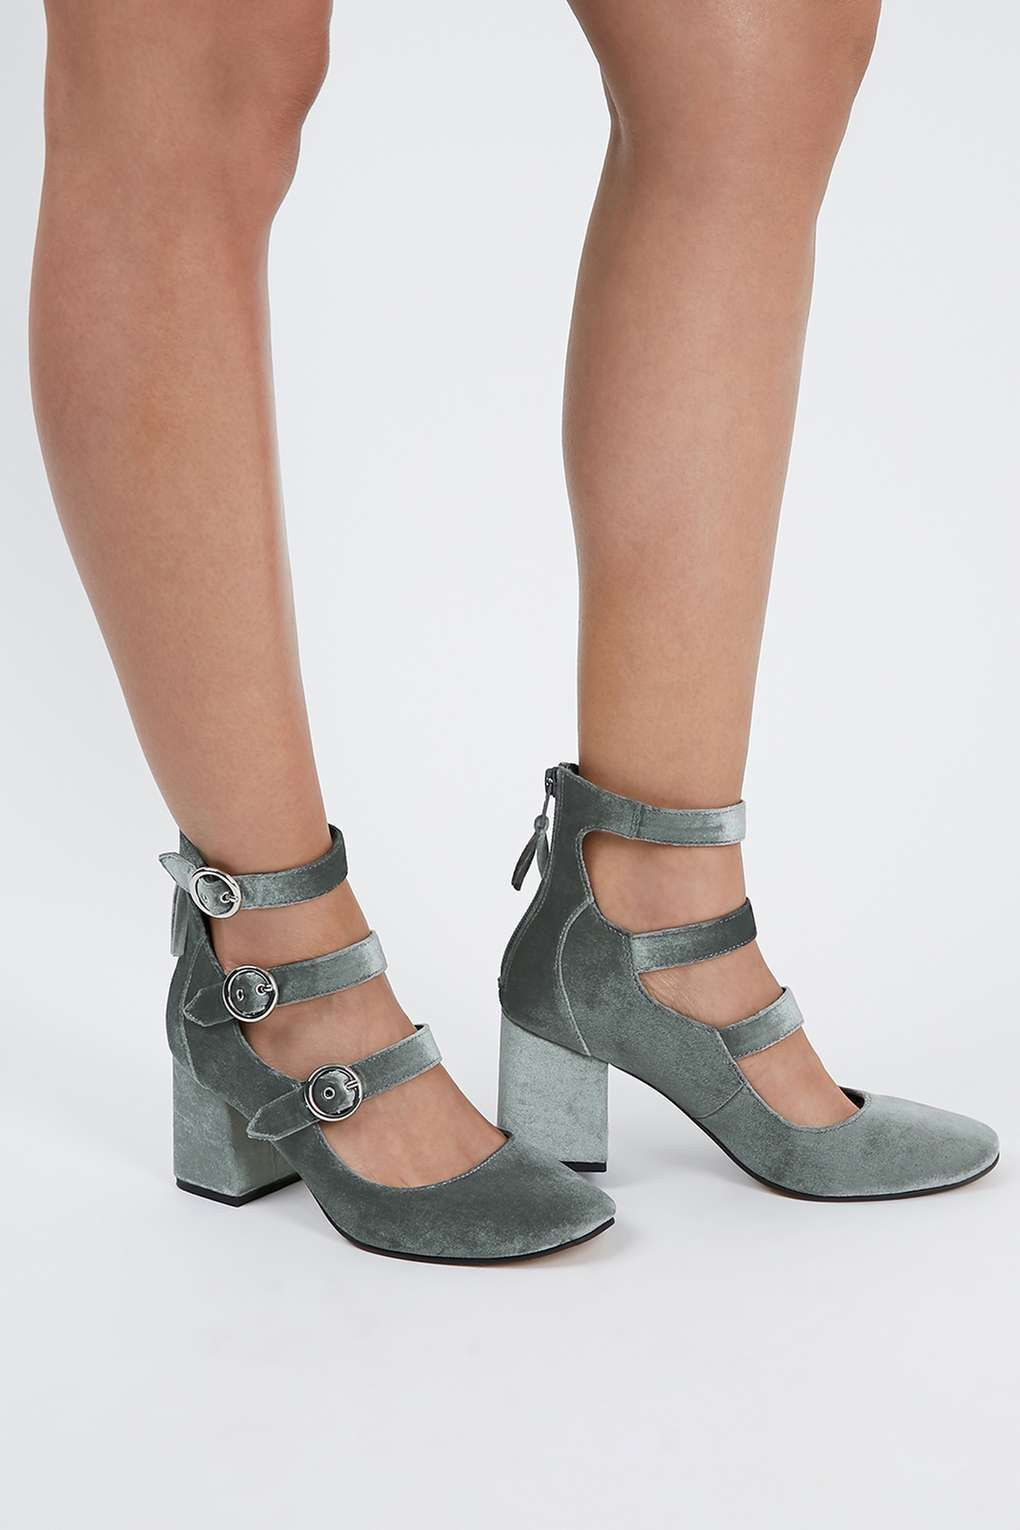 JOJO Multi Buckle Shoes